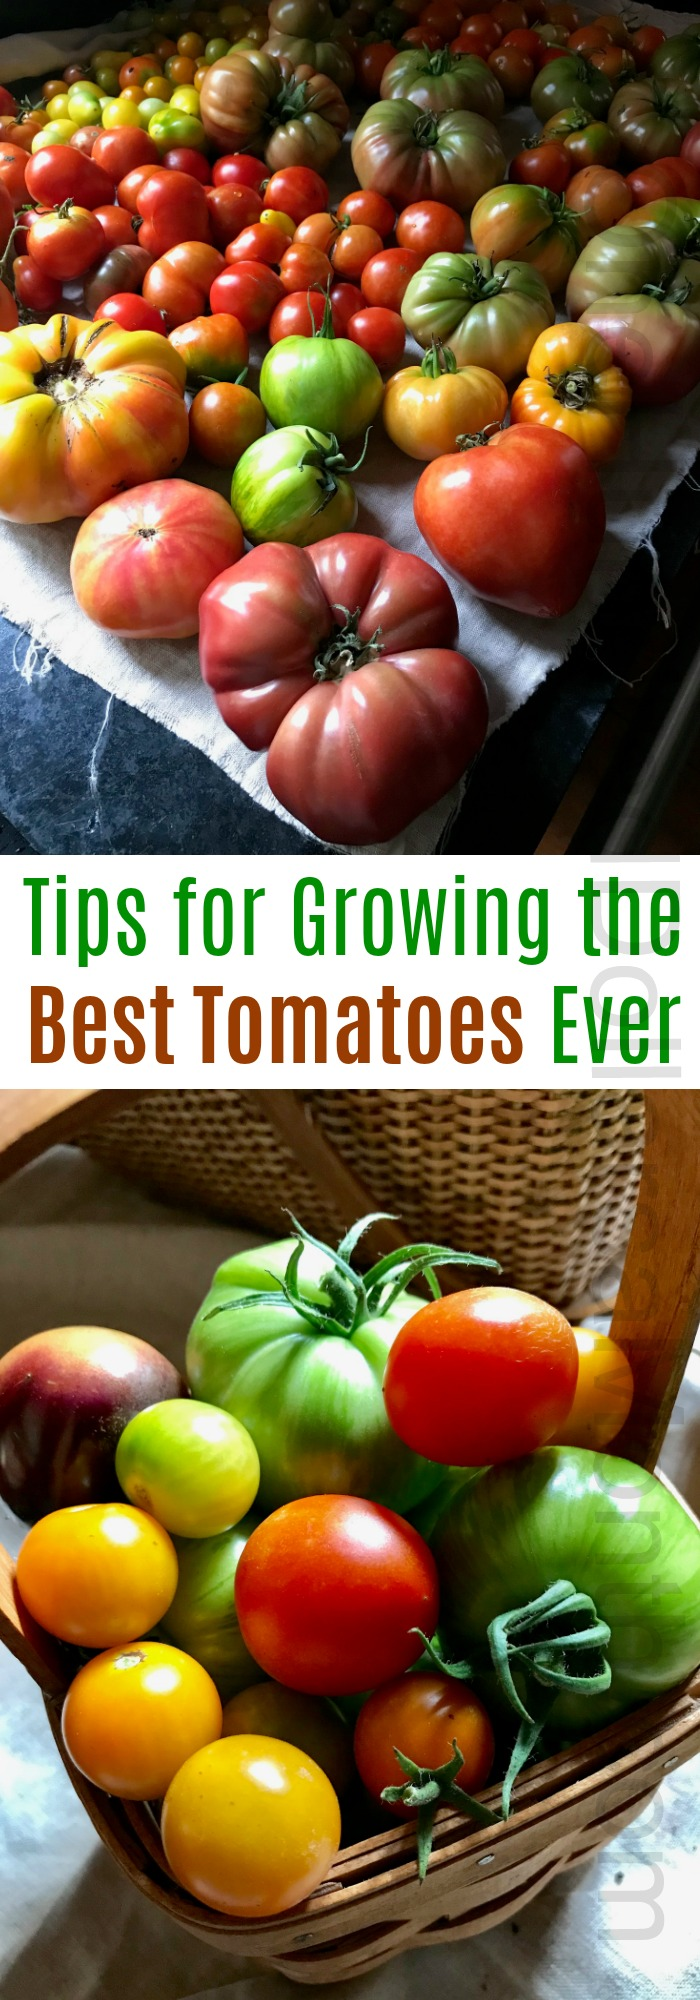 Tips for Growing the Best Tomatoes Ever